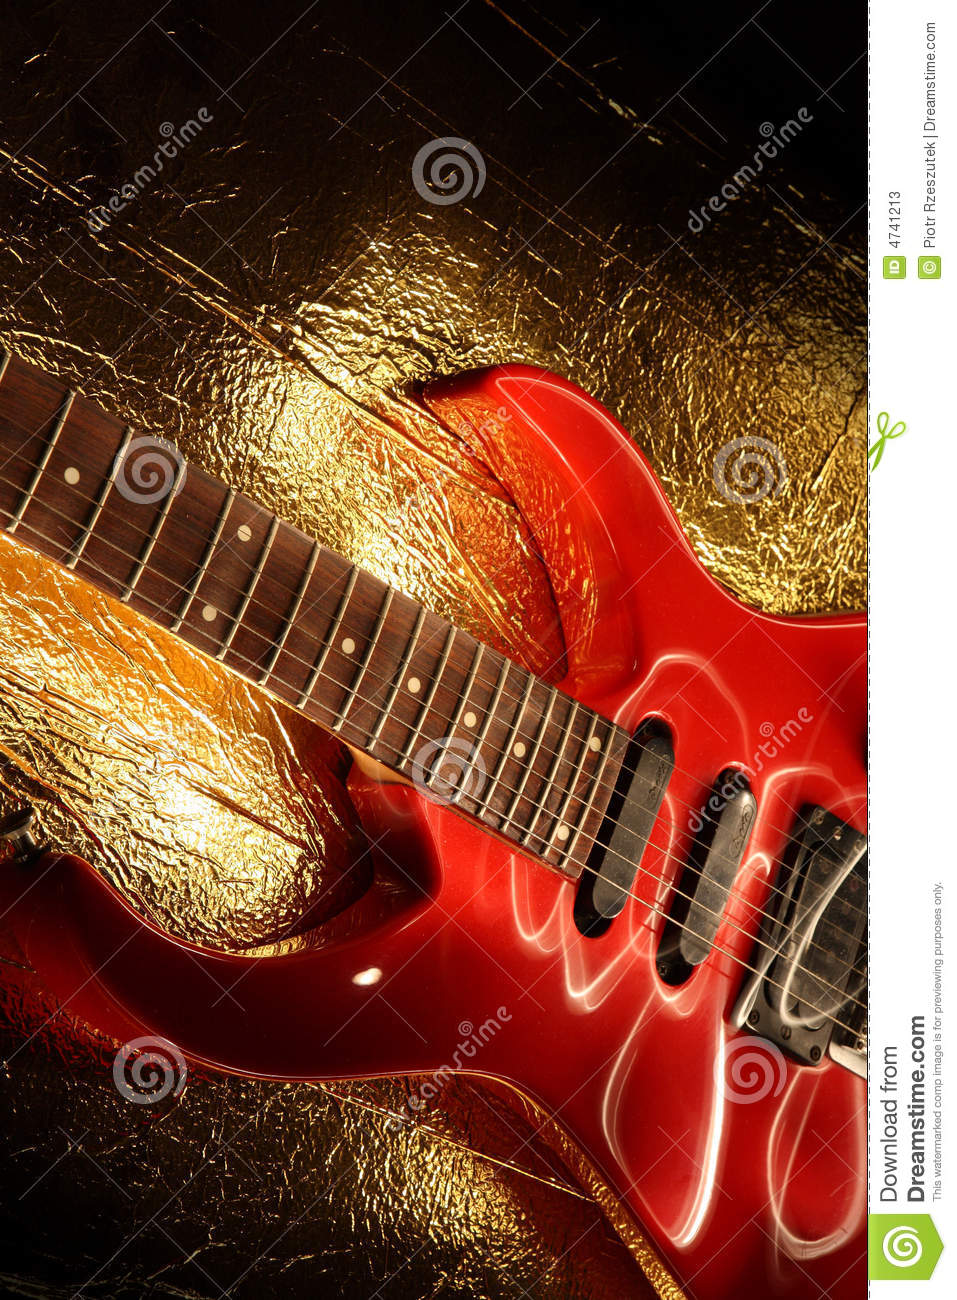 music time guitar abstract - photo #15